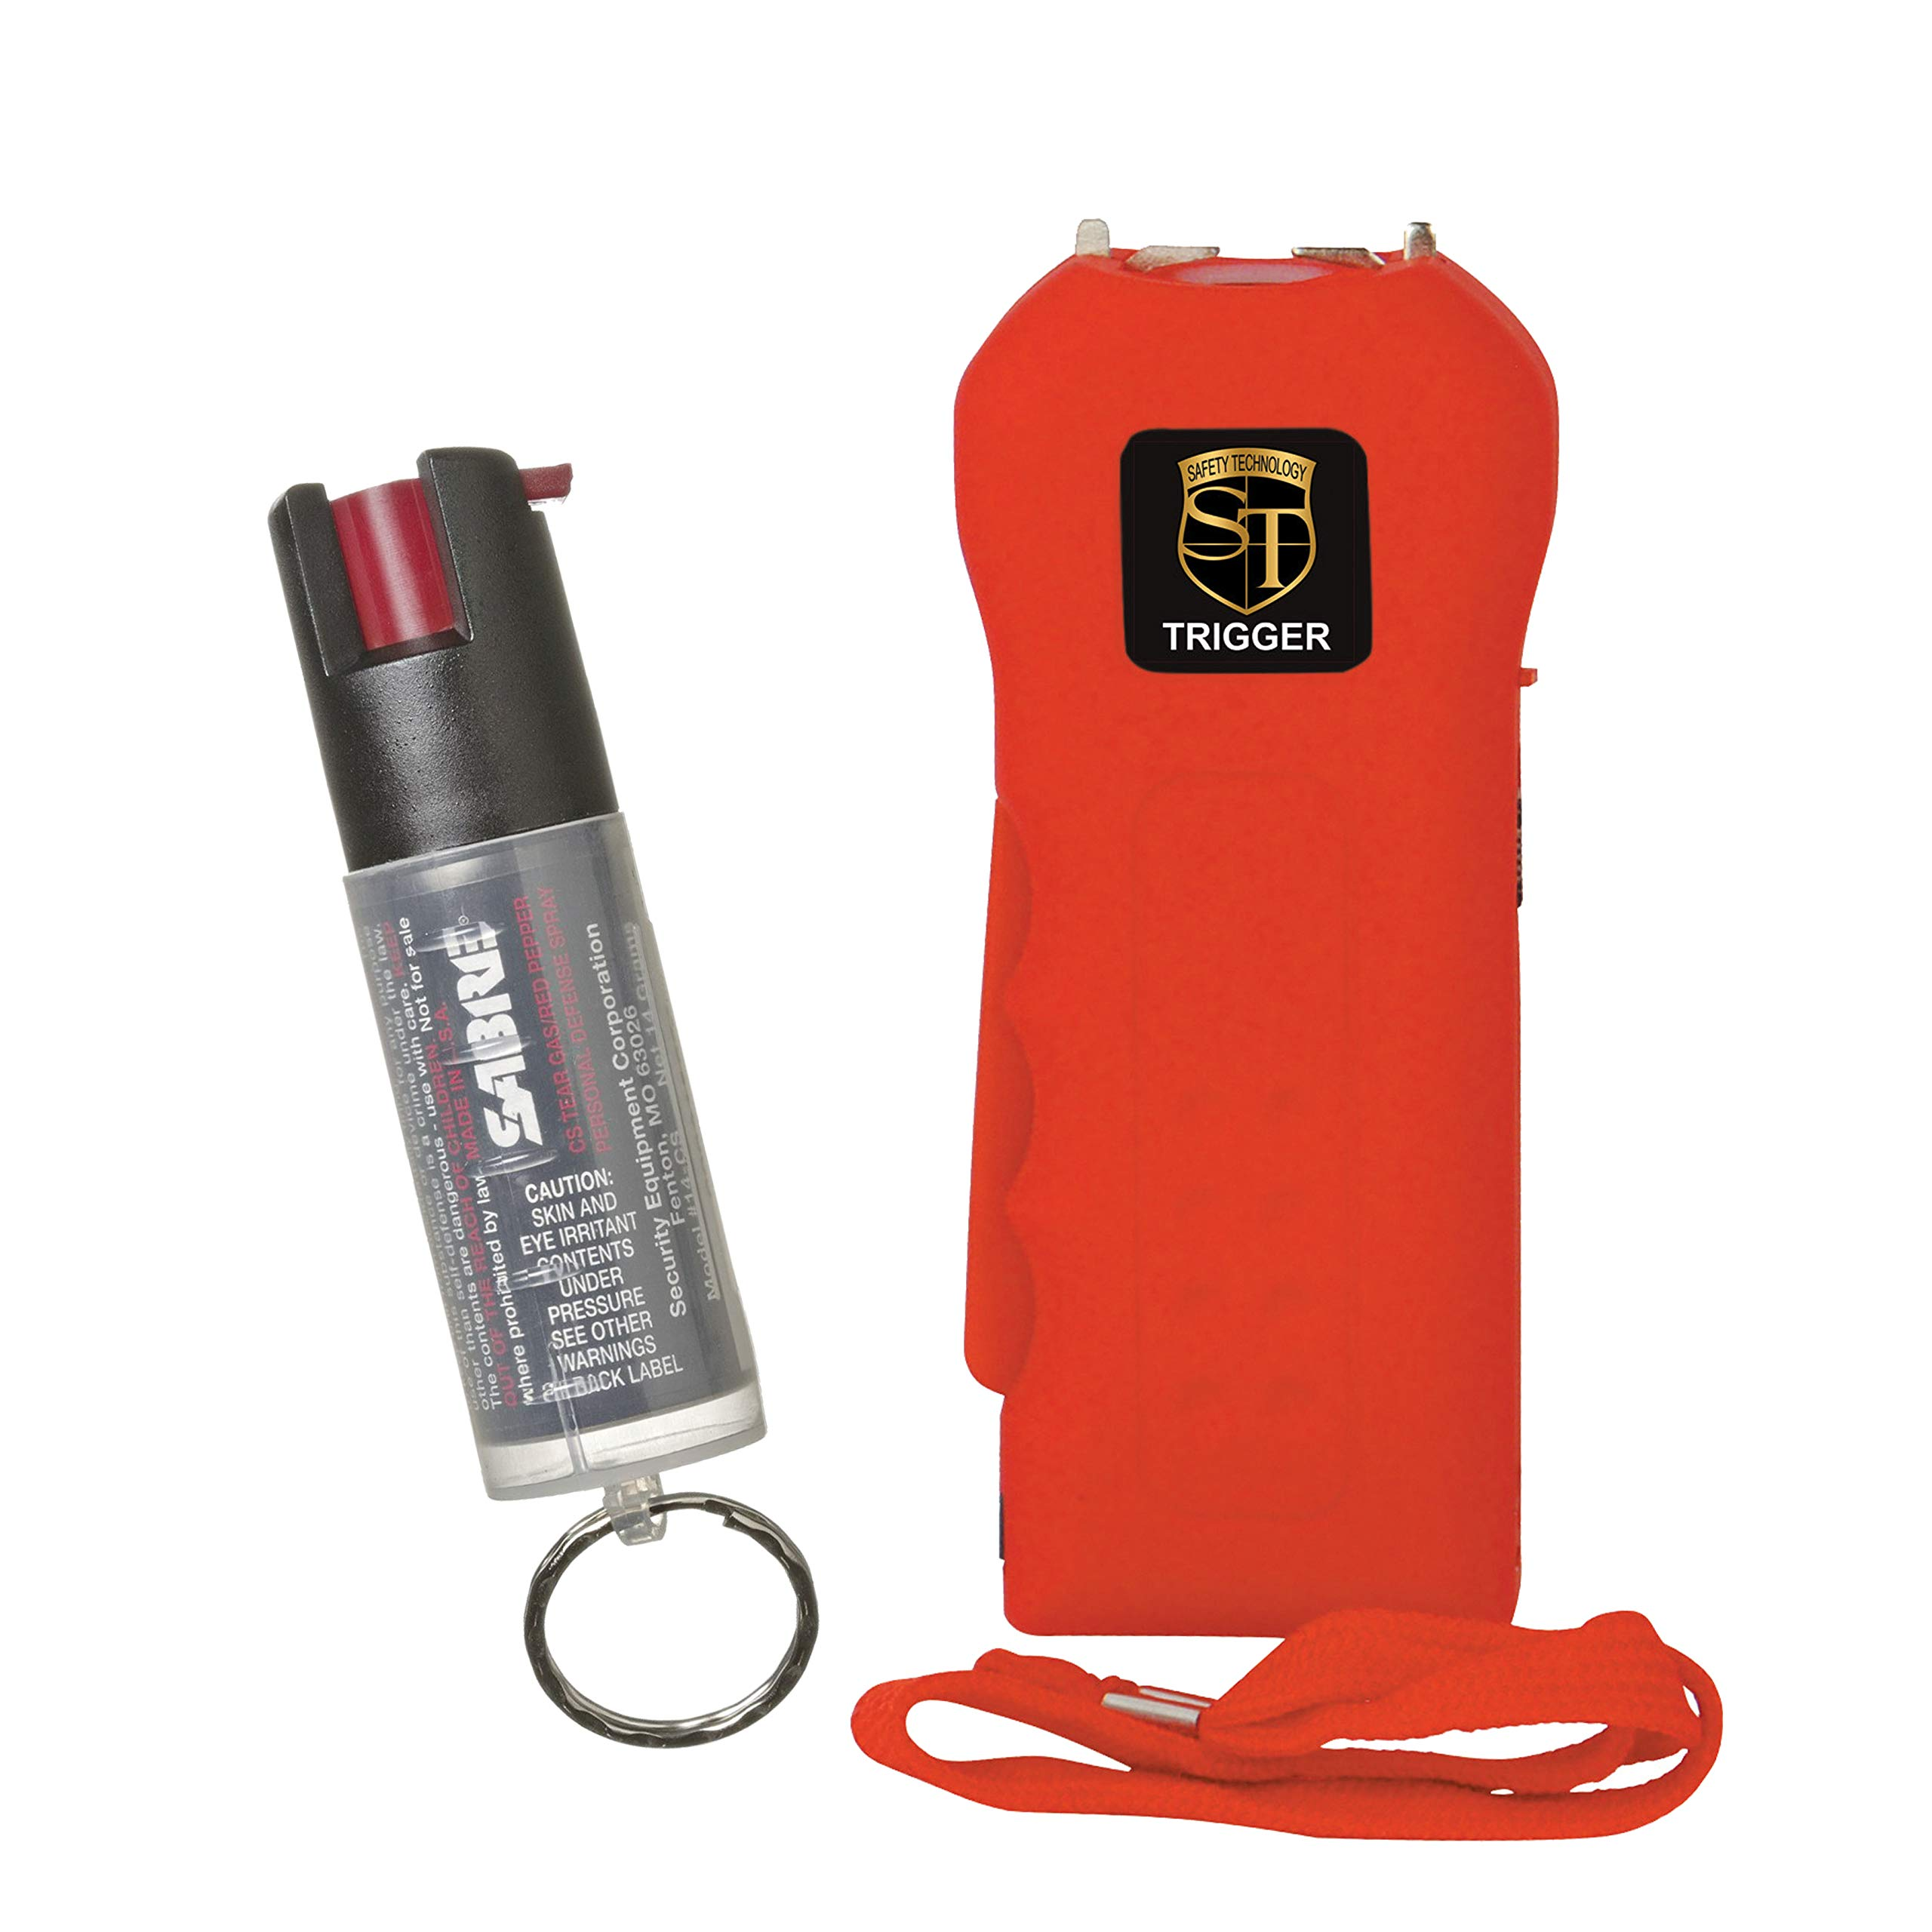 TRIGGER College Safety Bundle: 20 MIL Stun Gun and Sabre Key Chain Pepper Spray - Lot of 2 as Shown Stun Gun RED